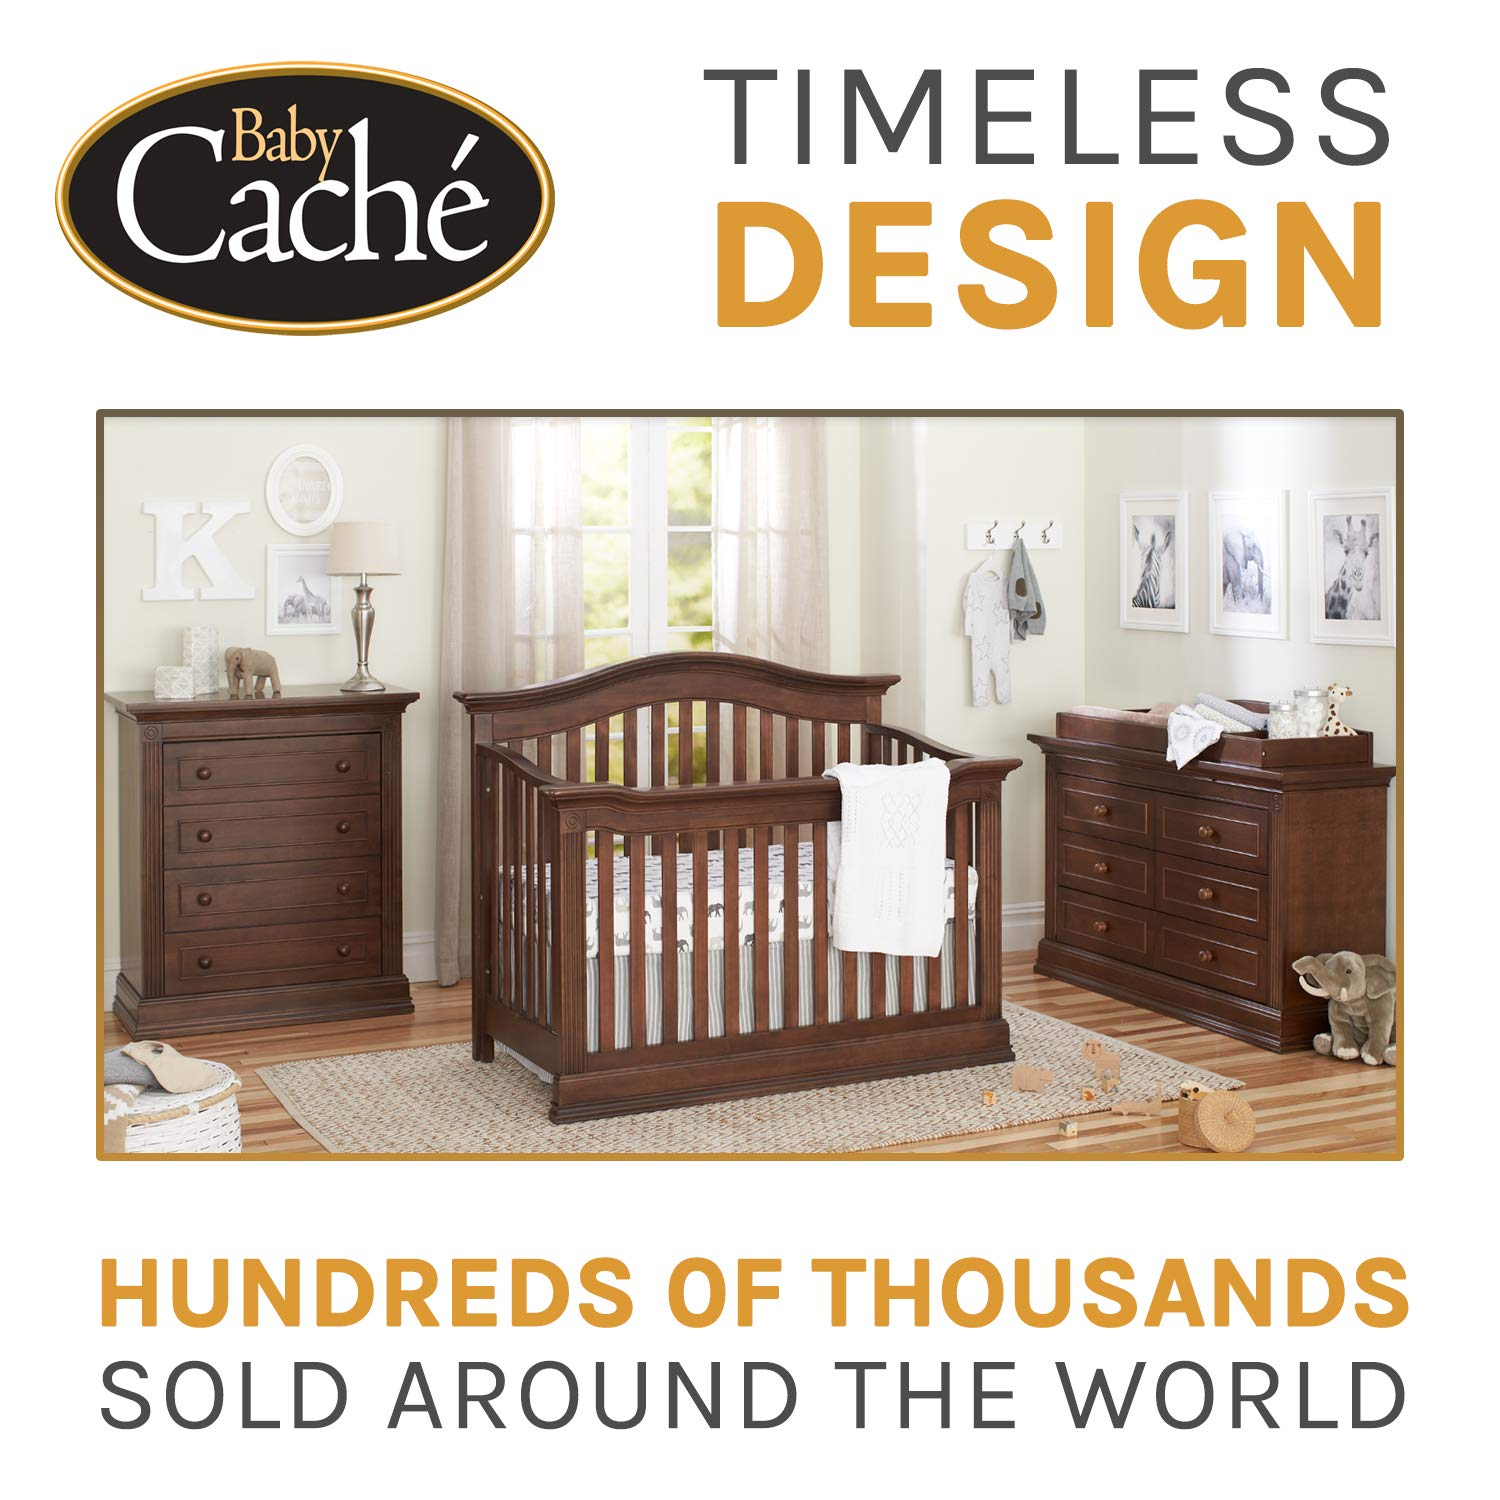 Baby Cache Montana Collection Crib Conversion Kit, Brown Sugar by Baby Cache (Image #4)